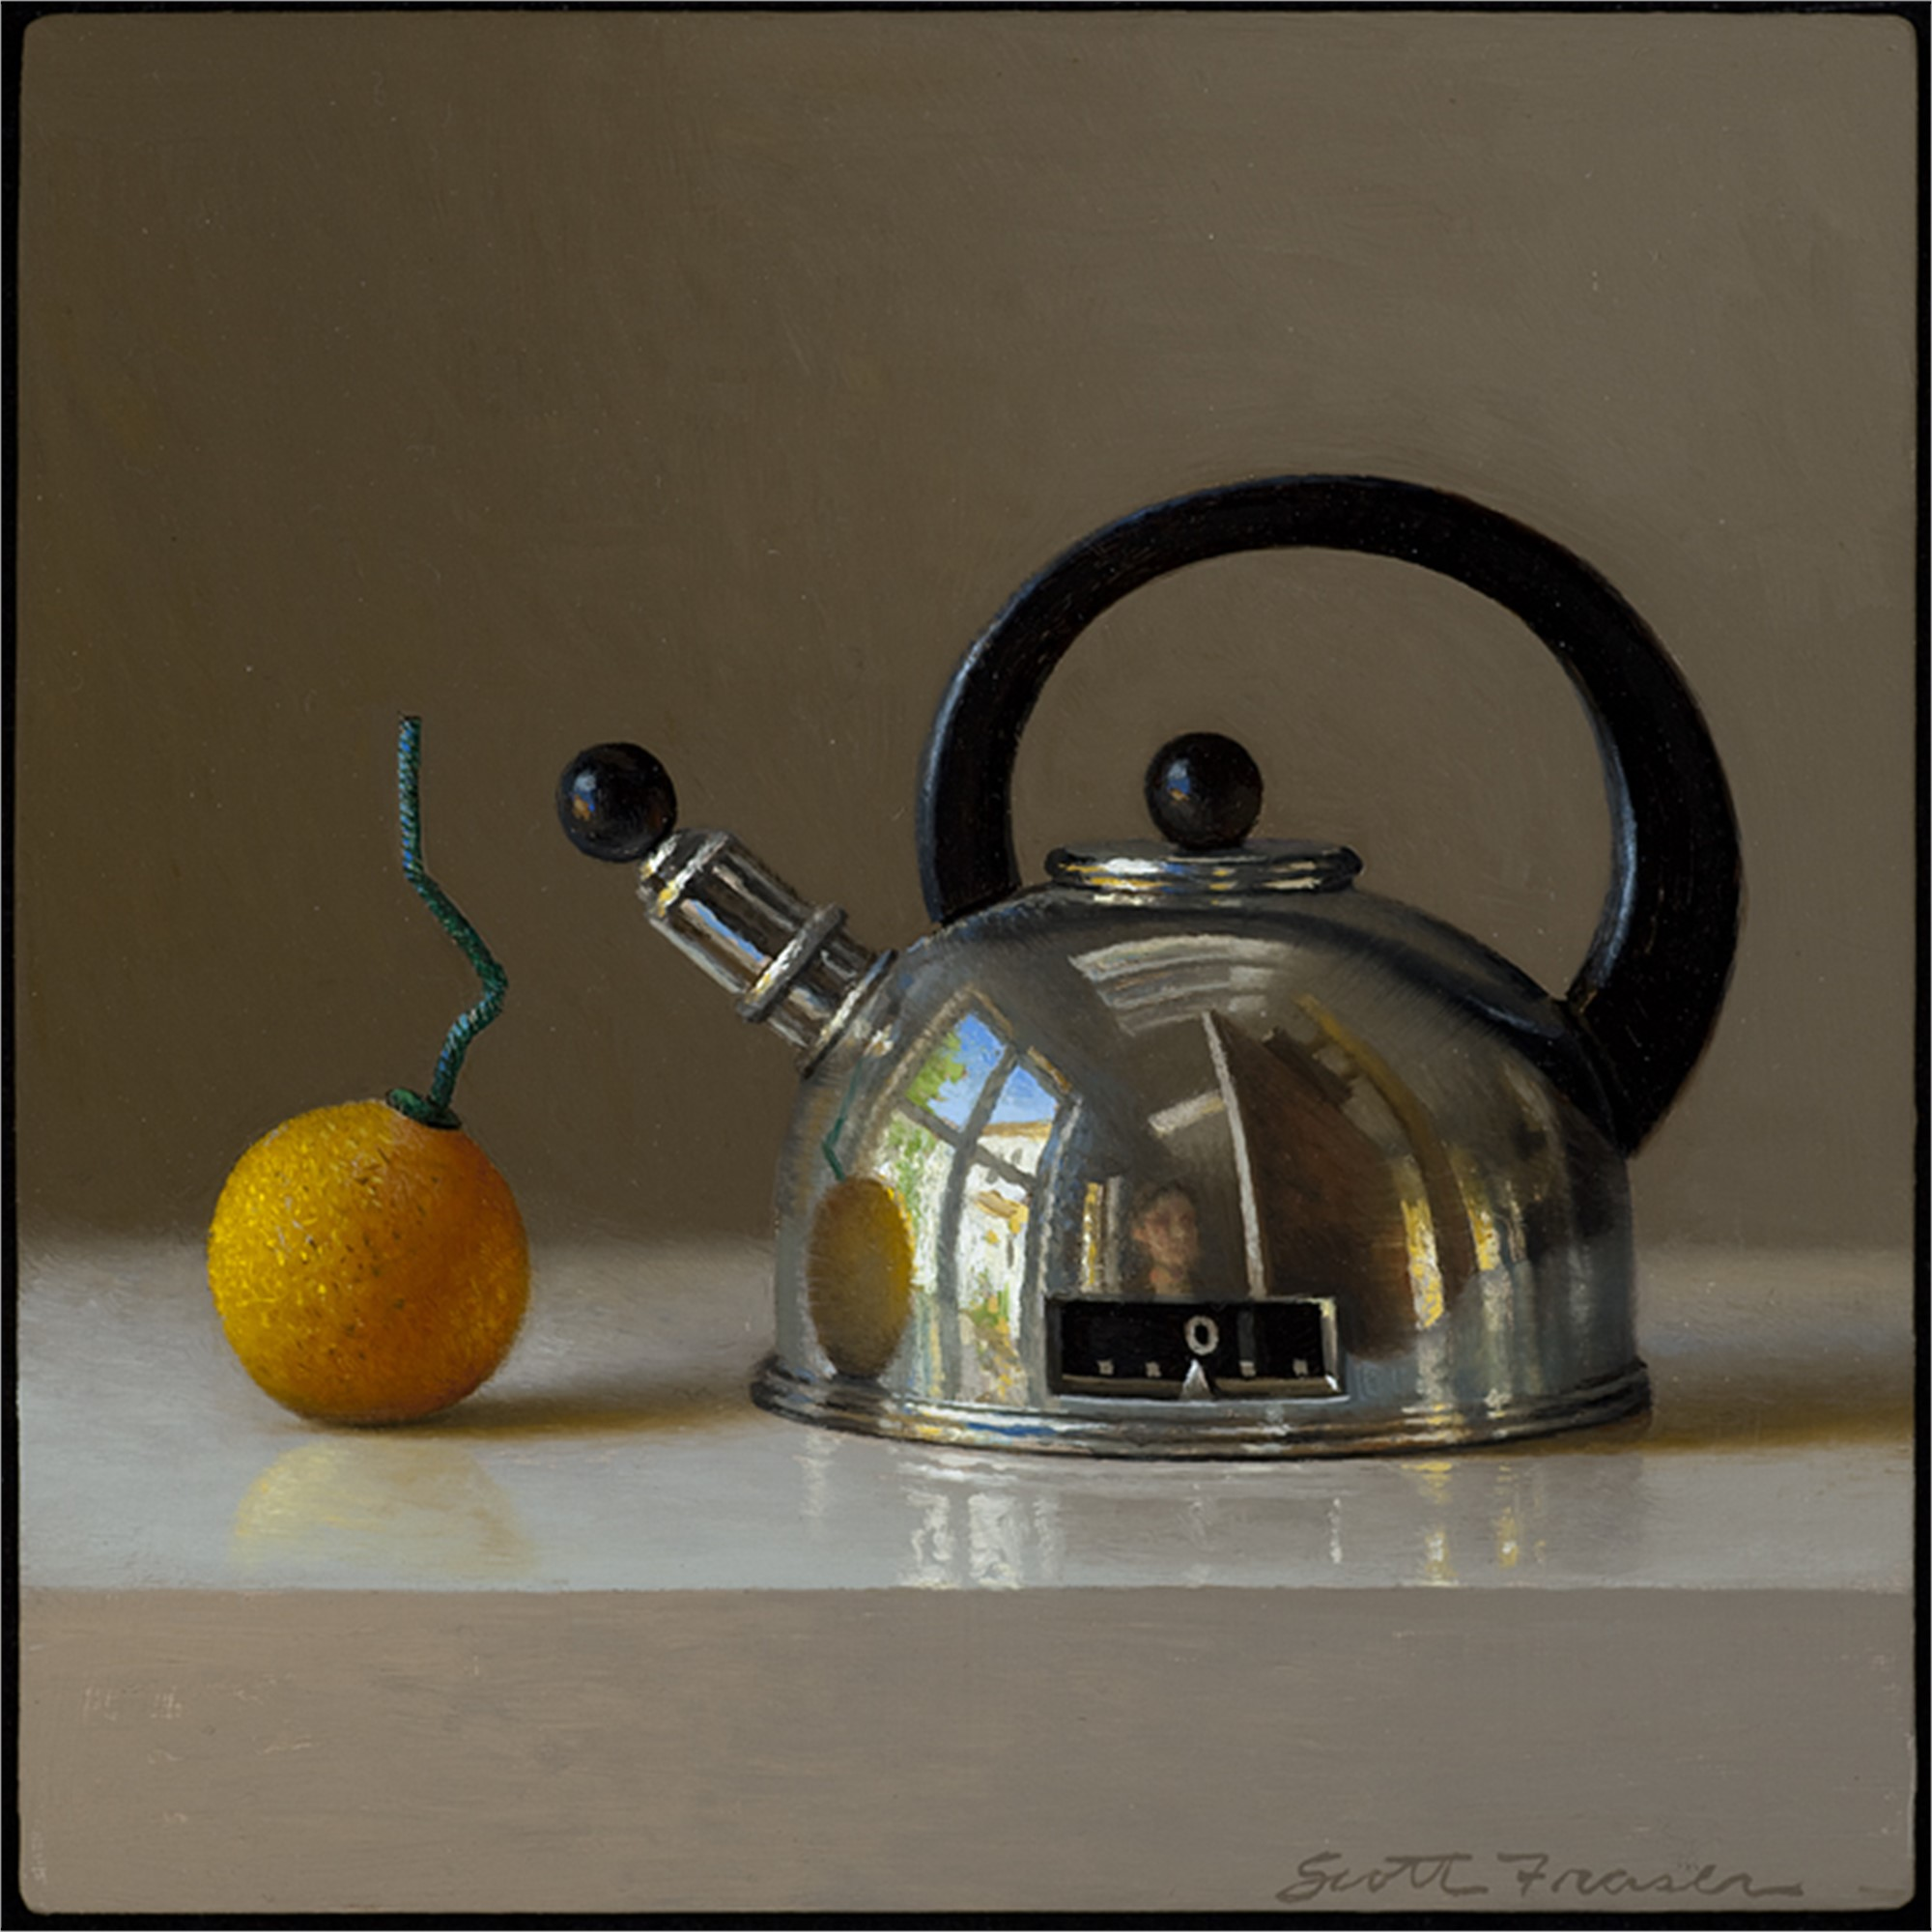 Teapot with Smokebomb by Scott Fraser